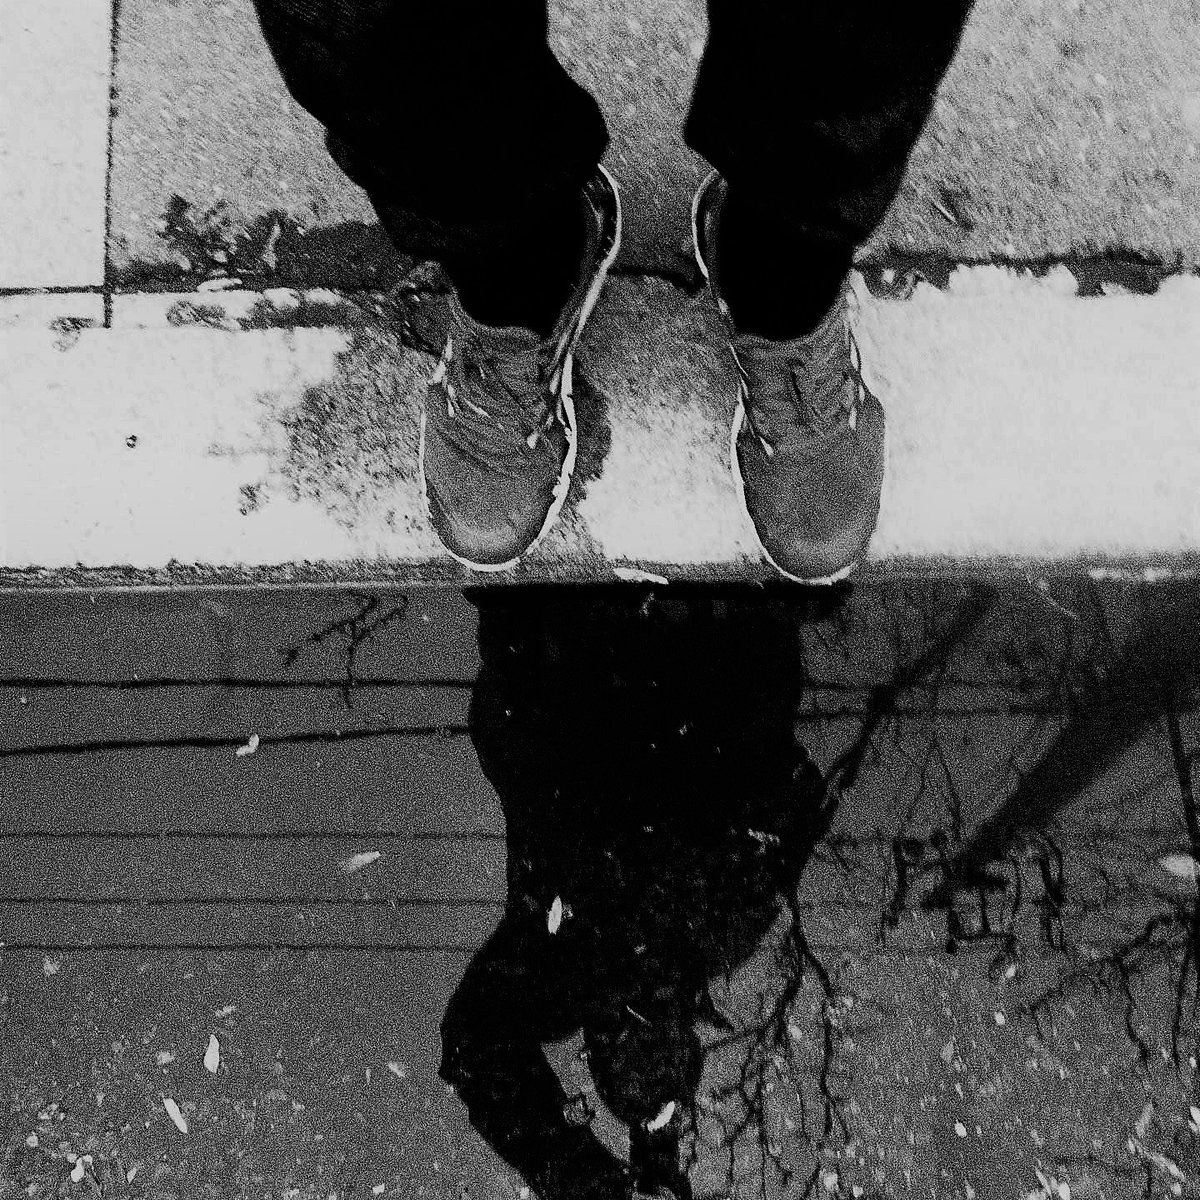 &quot;-in/-step-&quot; (2017) (c) R.F.Kenter (from an ongoing shadow project, #Barcelona) #portrait #shadows #images #contemporaryart #blackandwhite<br>http://pic.twitter.com/xzaiuMuHyT